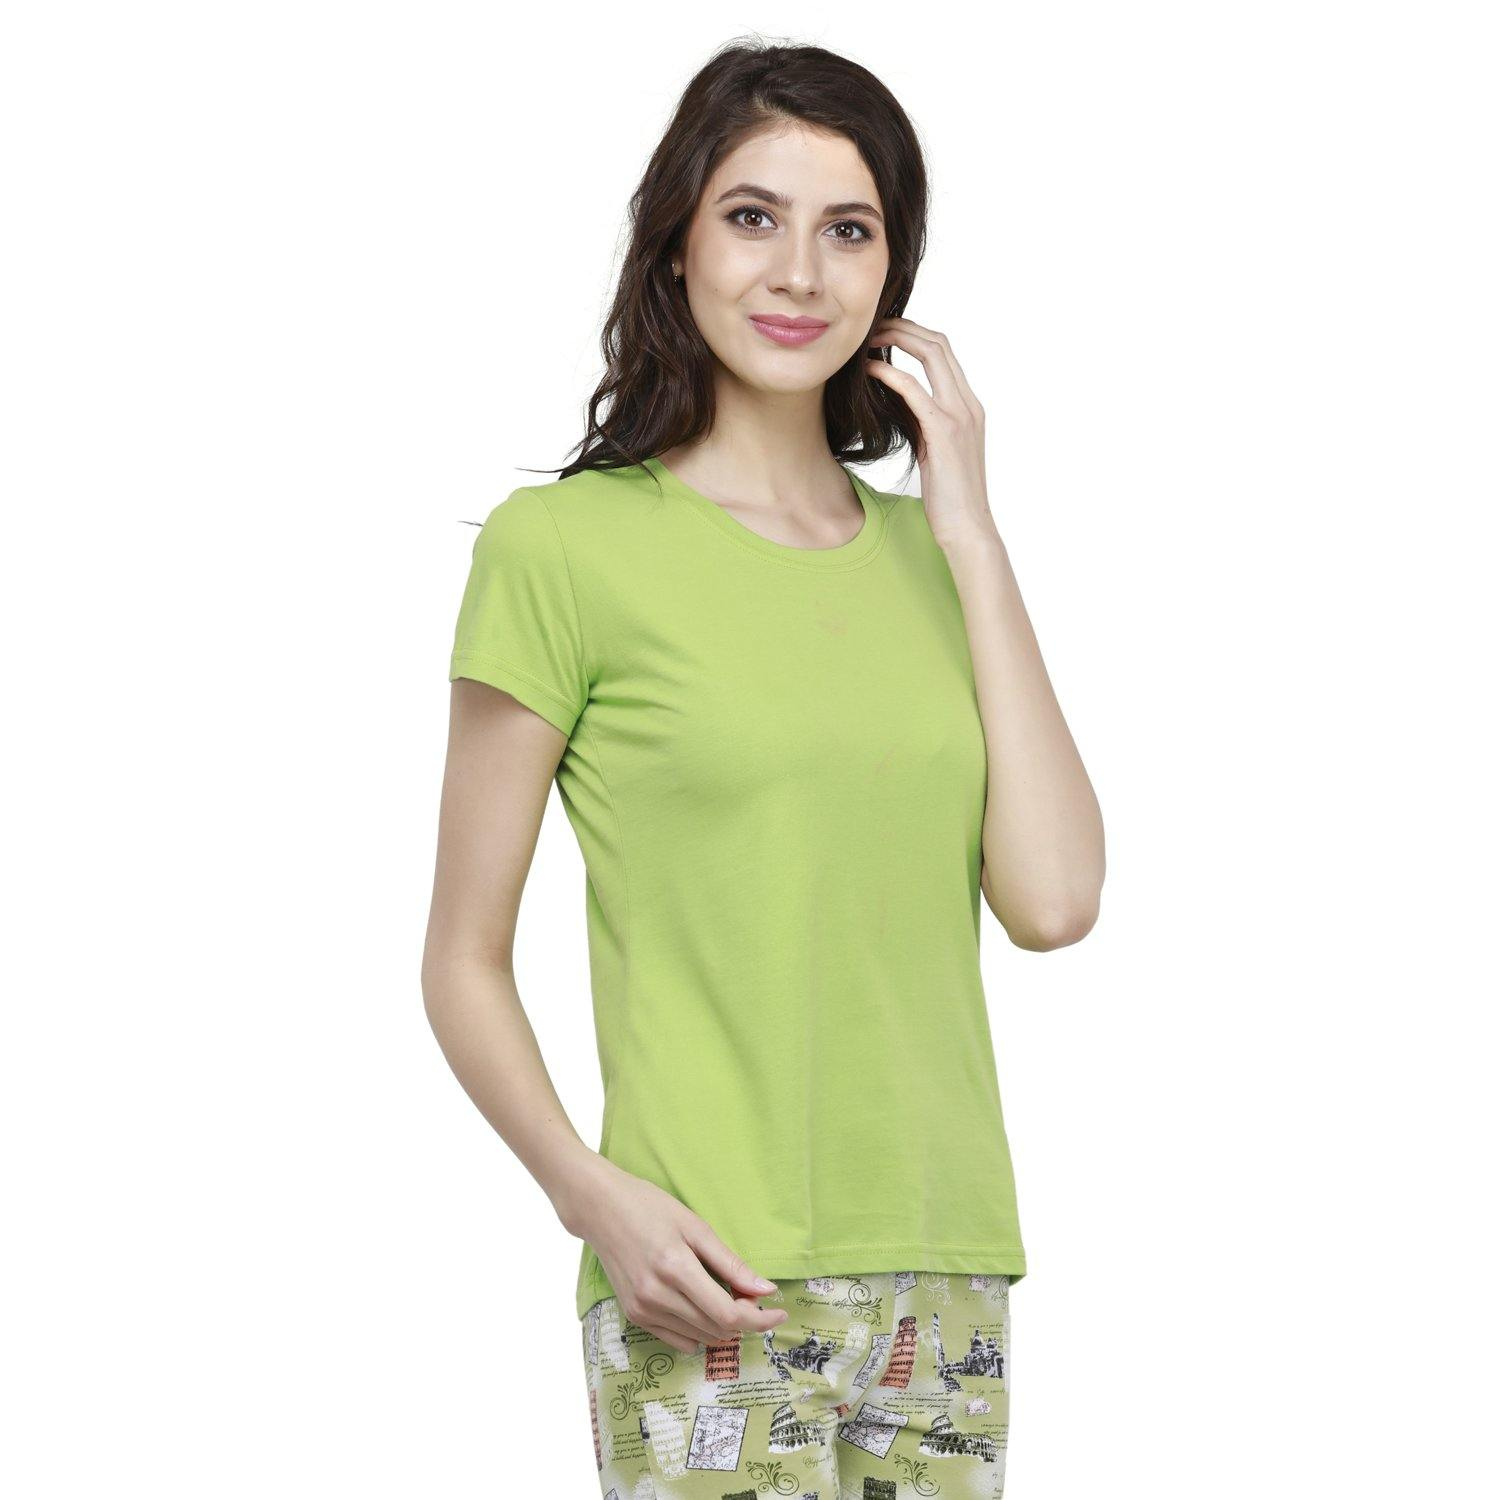 Casual Half Sleeve Women's T-Shirt For Summer - Greenery